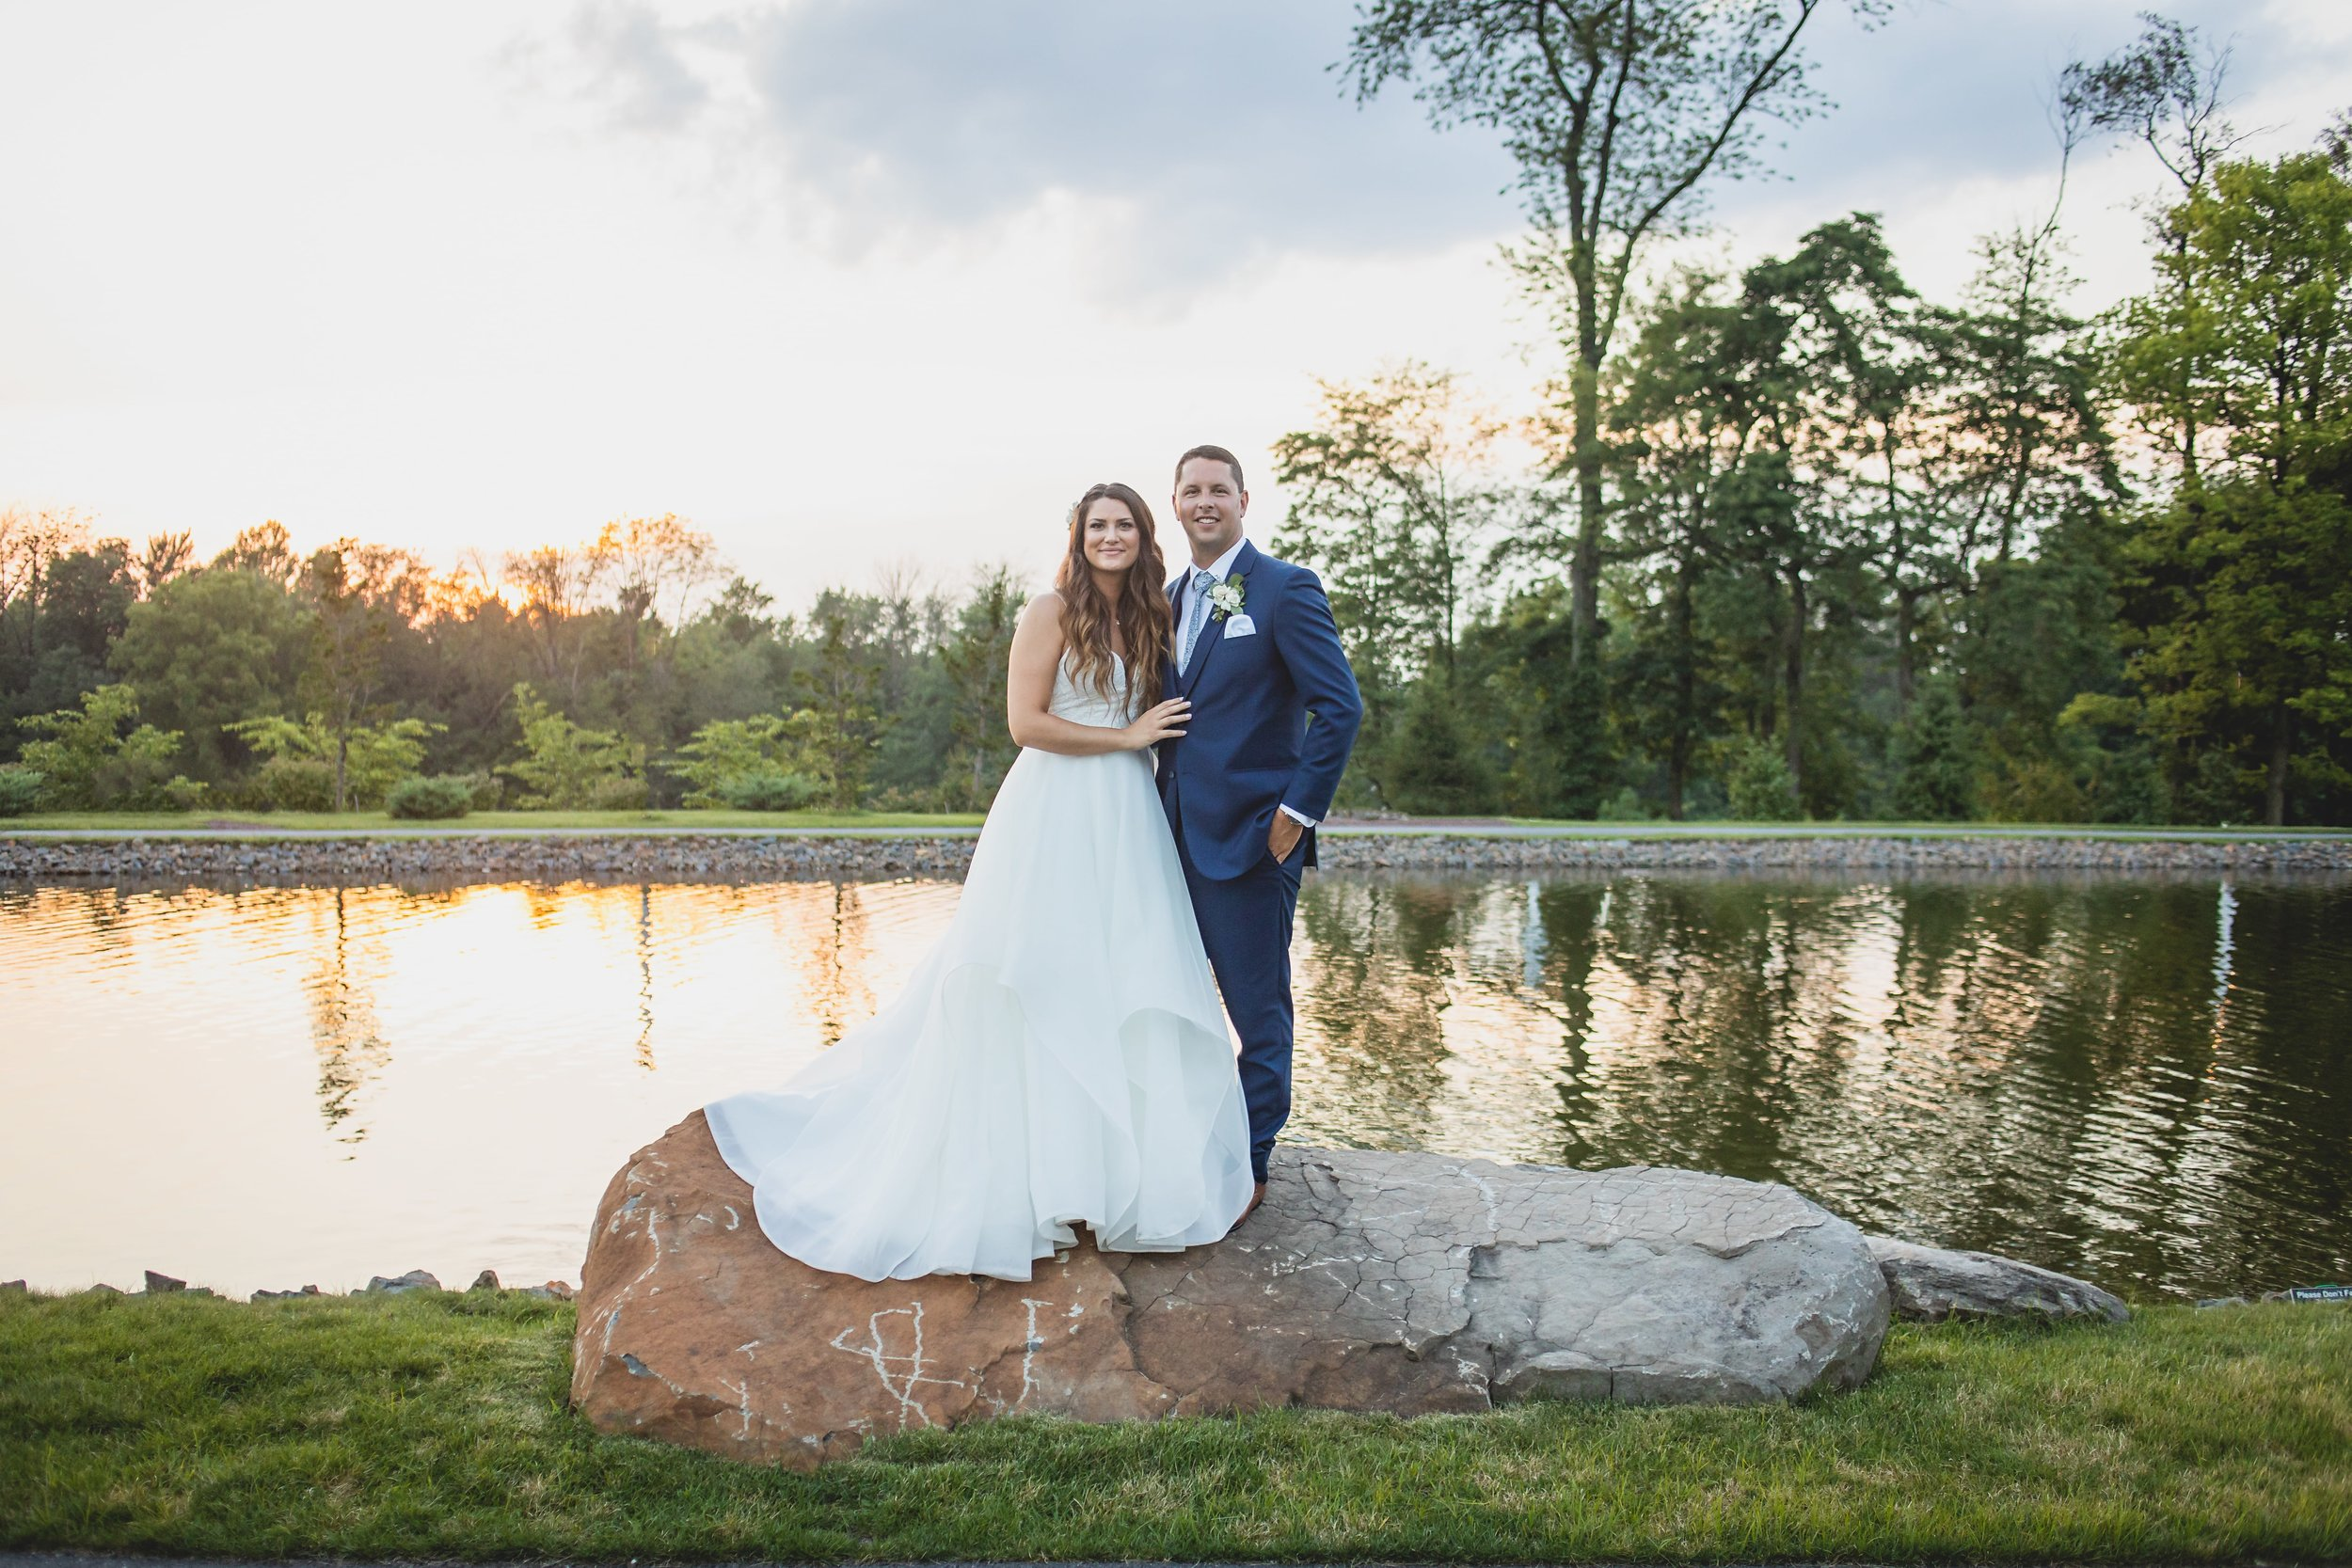 Bride and groom standing on a large rock with sunlight reflecting off the pond behind them.